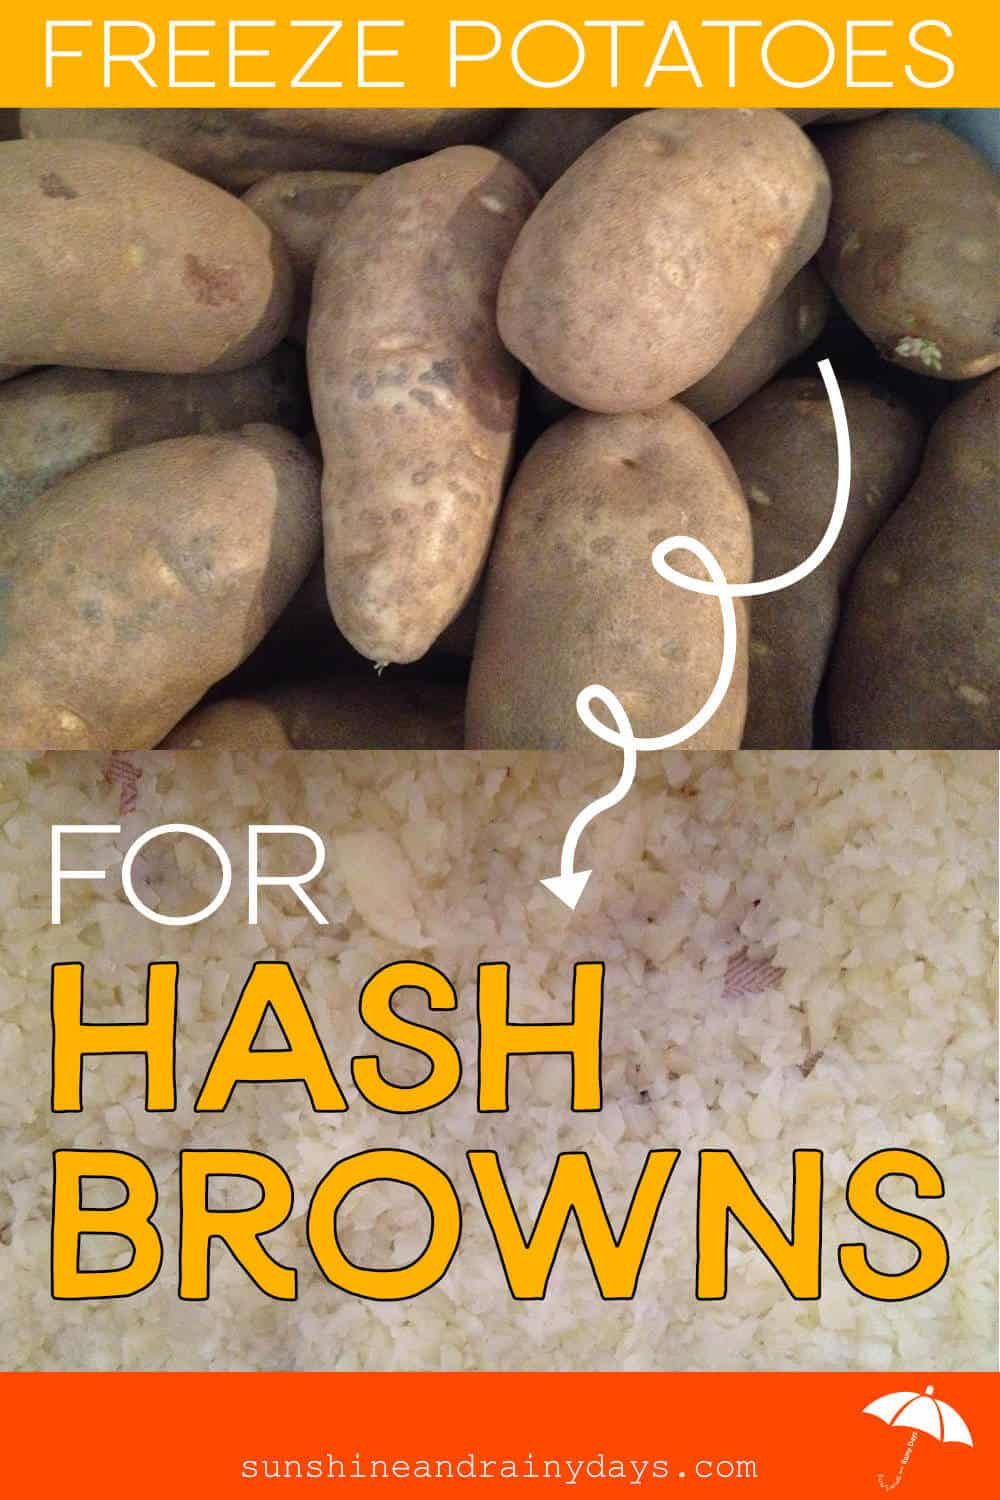 How To Make Homemade Hash Browns To Freeze